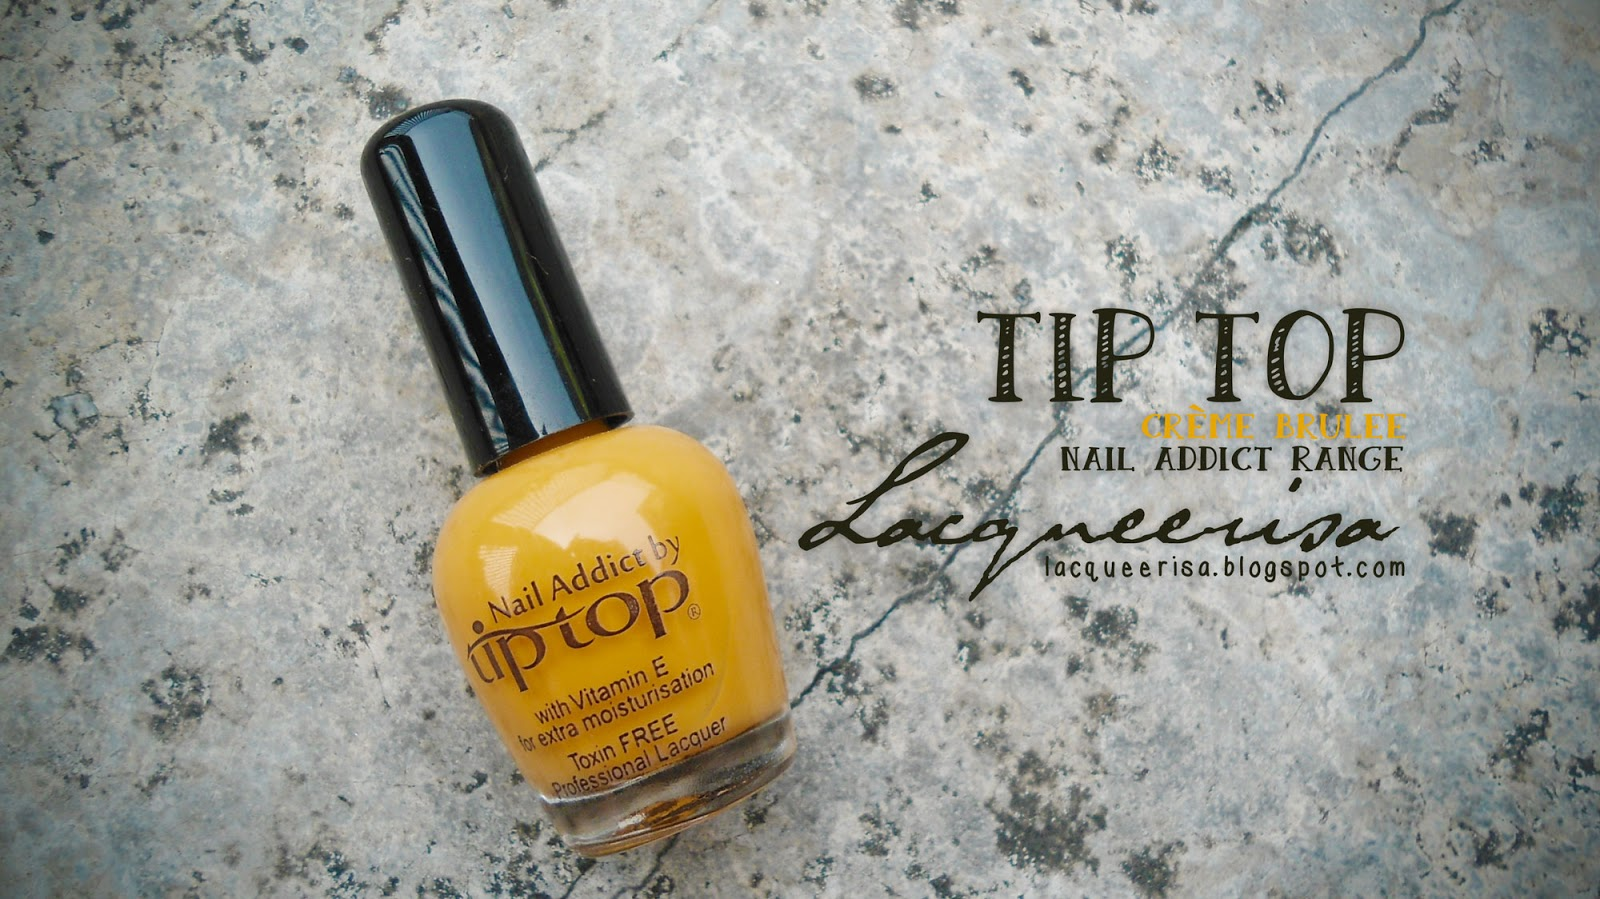 Lacqueerisa: Tip Top Nail Addict, Créme Brulee